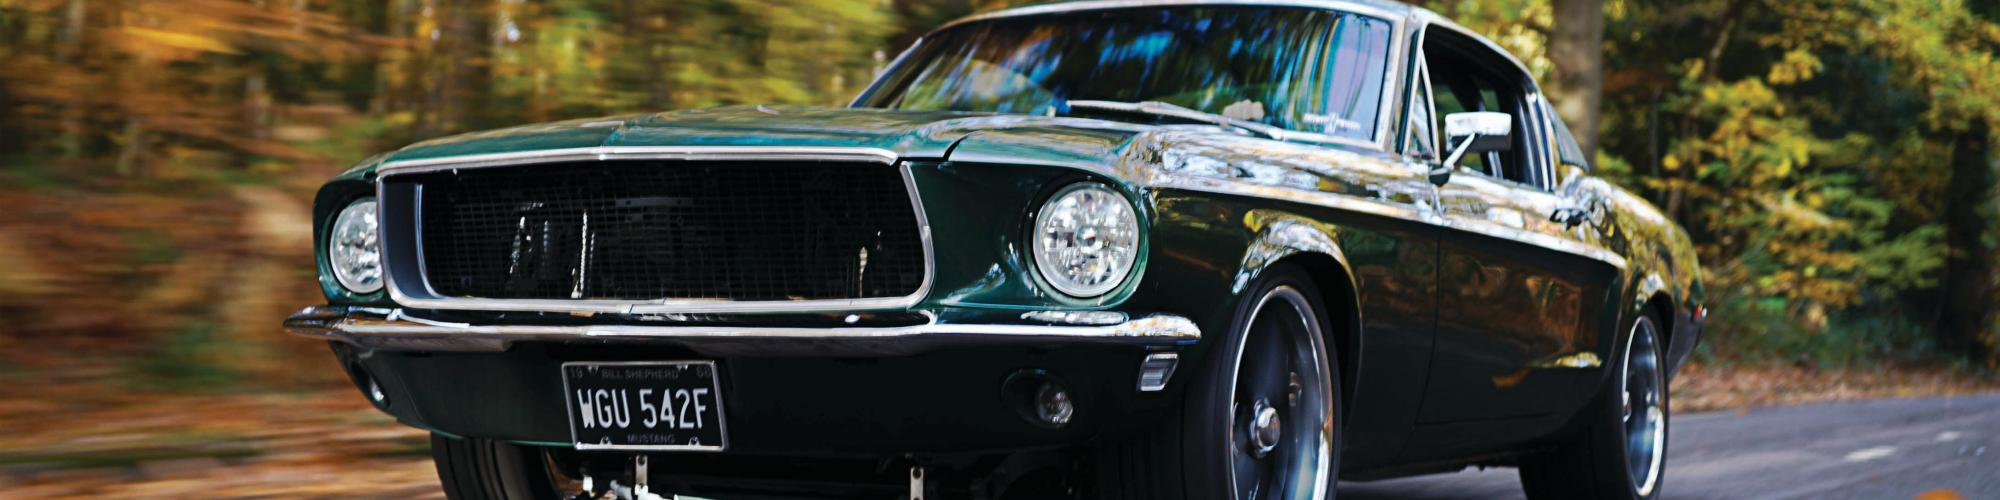 Bill Shepherd Mustang  cover image